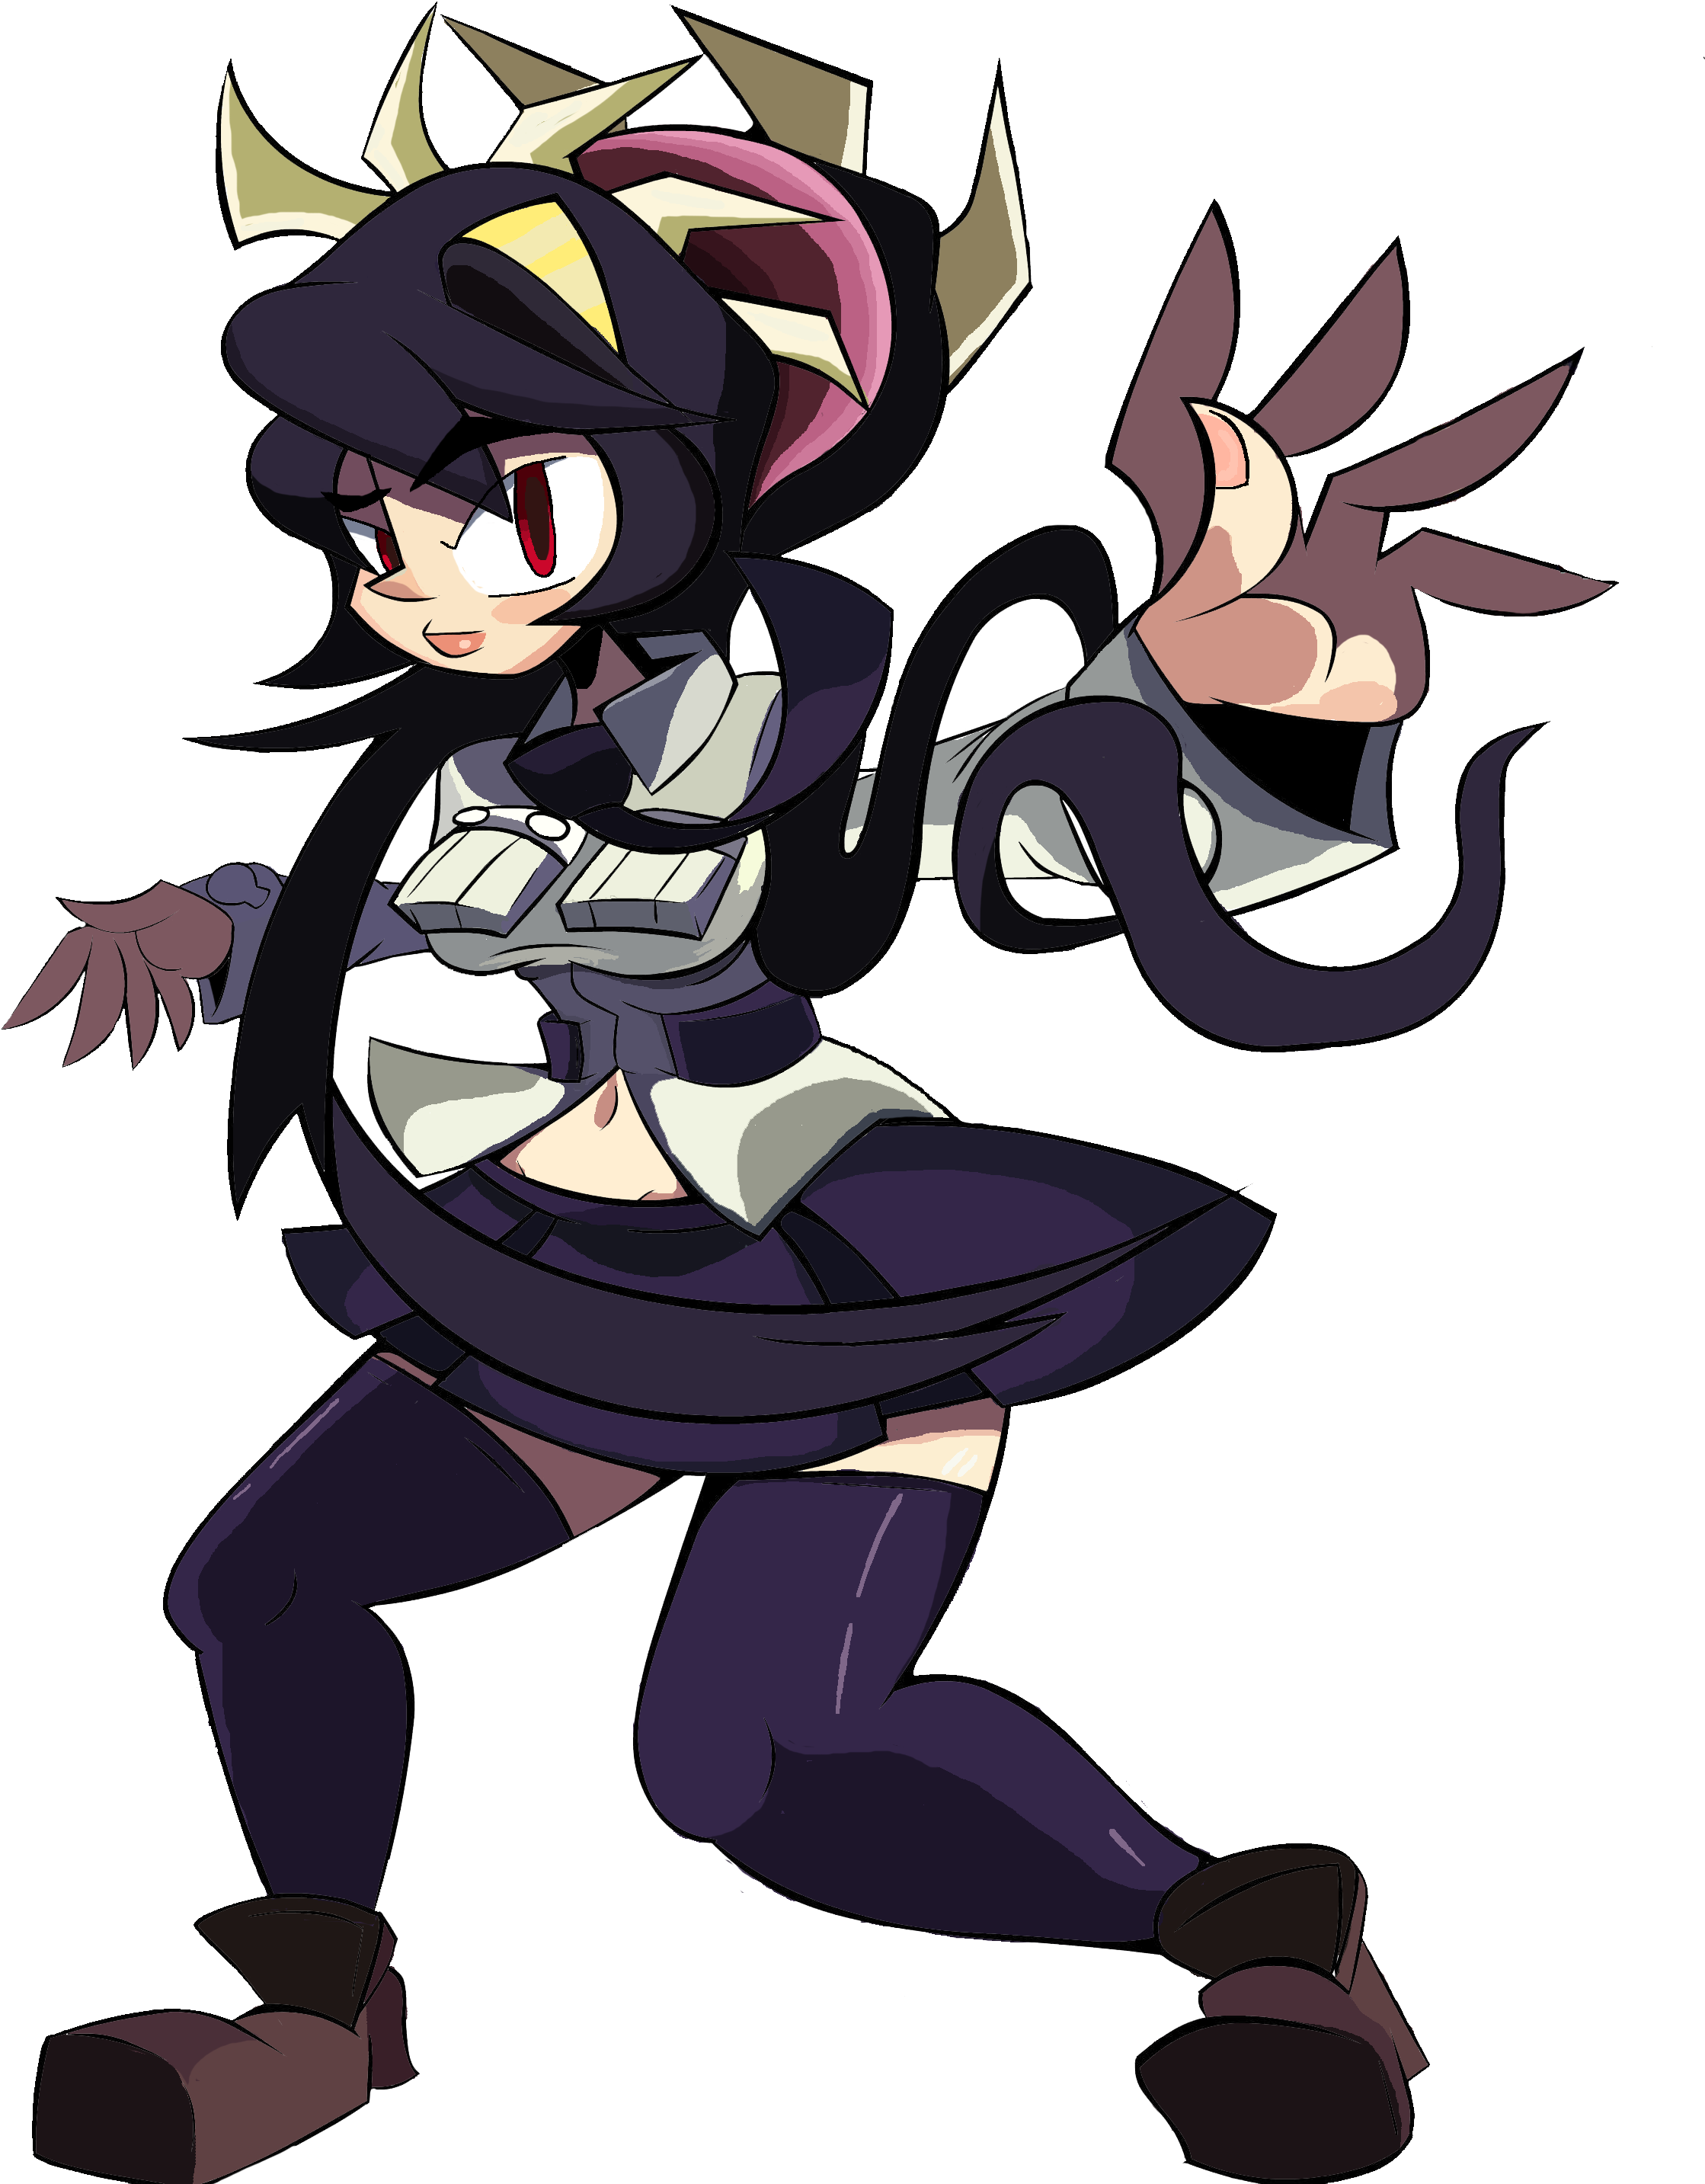 HD Drew Filia For A Skullgirls Collab I\'m Doing With A.